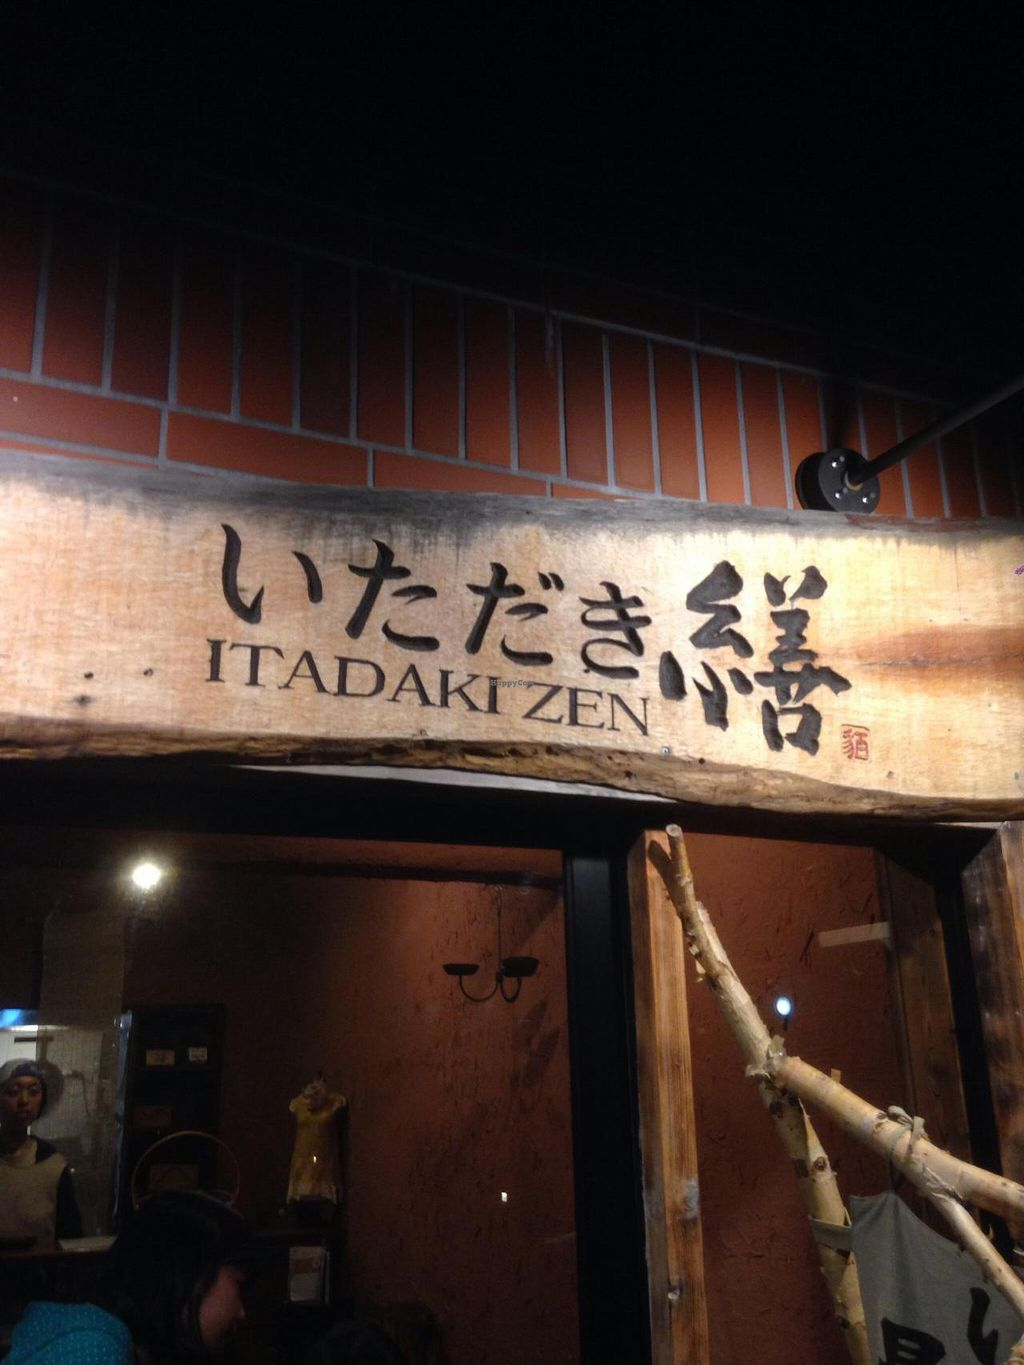 "Photo of Itadakizen  by <a href=""/members/profile/ItalianChick"">ItalianChick</a> <br/>Exterior <br/> August 30, 2014  - <a href='/contact/abuse/image/44157/78641'>Report</a>"